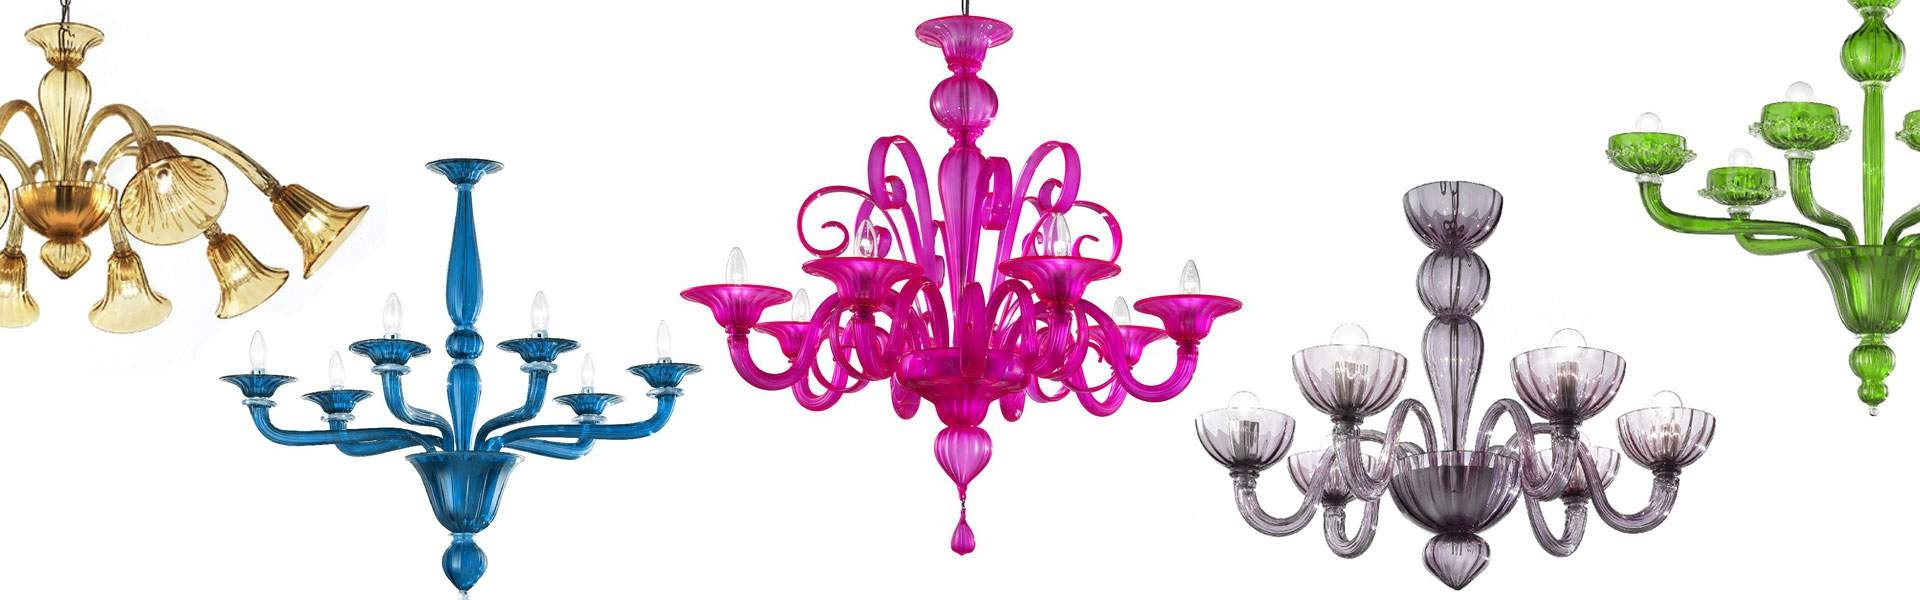 Murano Chandeliers Murano Glass Chandeliers For Sale From Italy Throughout Coloured Glass Chandelier (View 4 of 15)